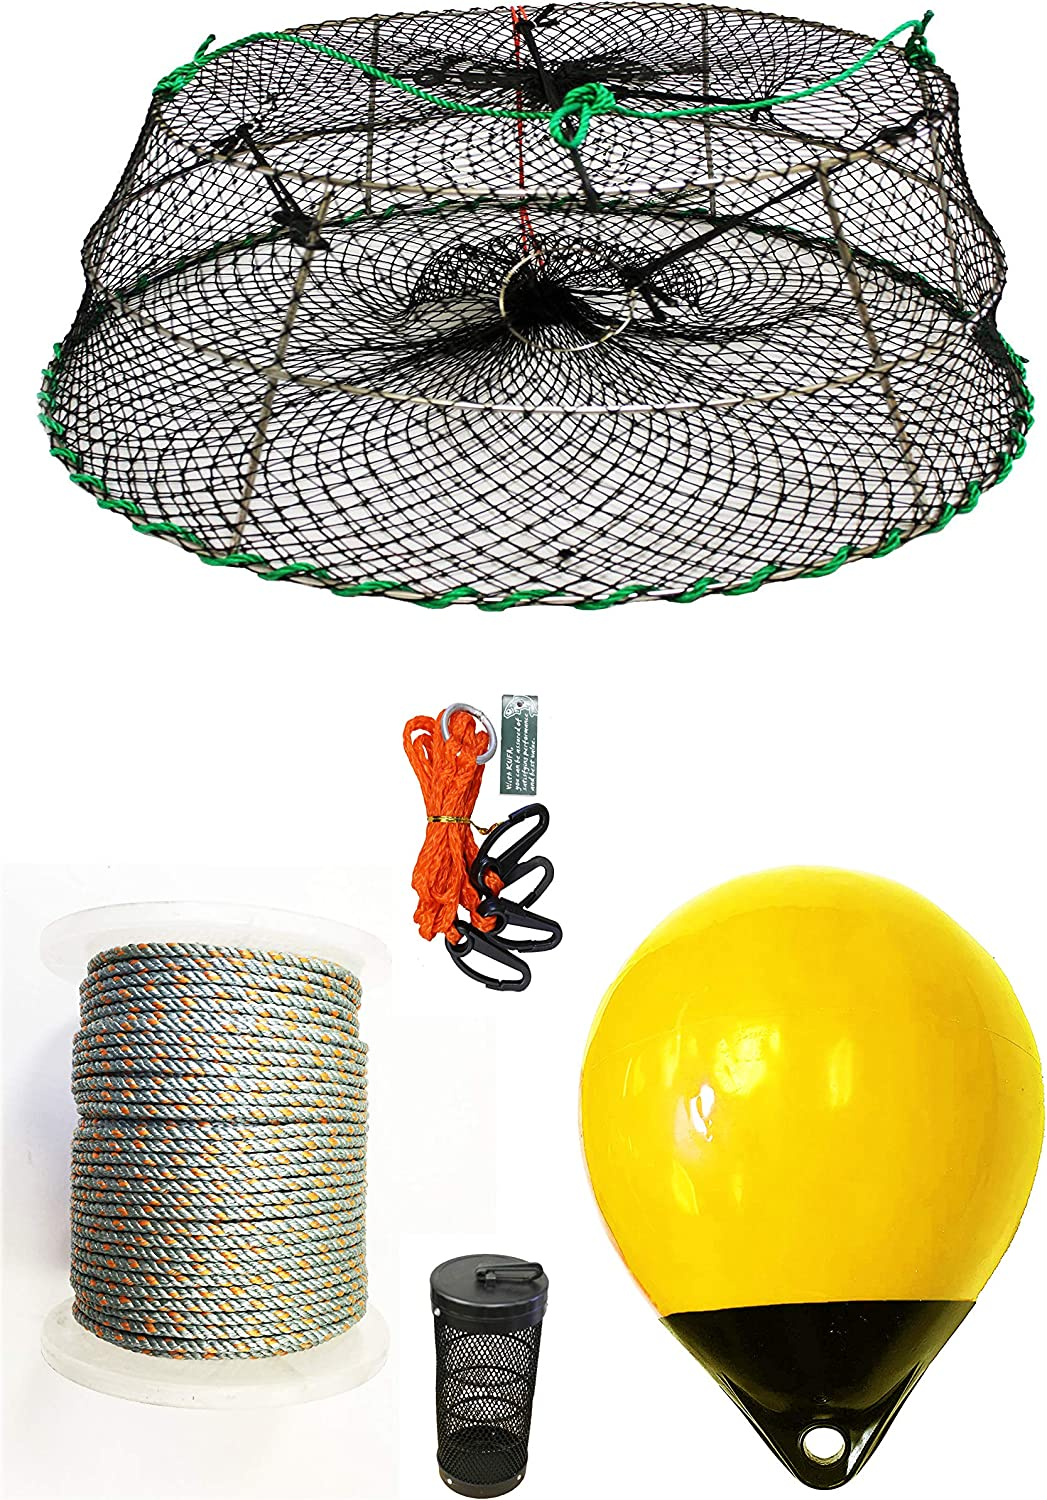 KUFA Sports Tower Style Ranking TOP10 Prawn Com with At the price of surprise Accessory Trap